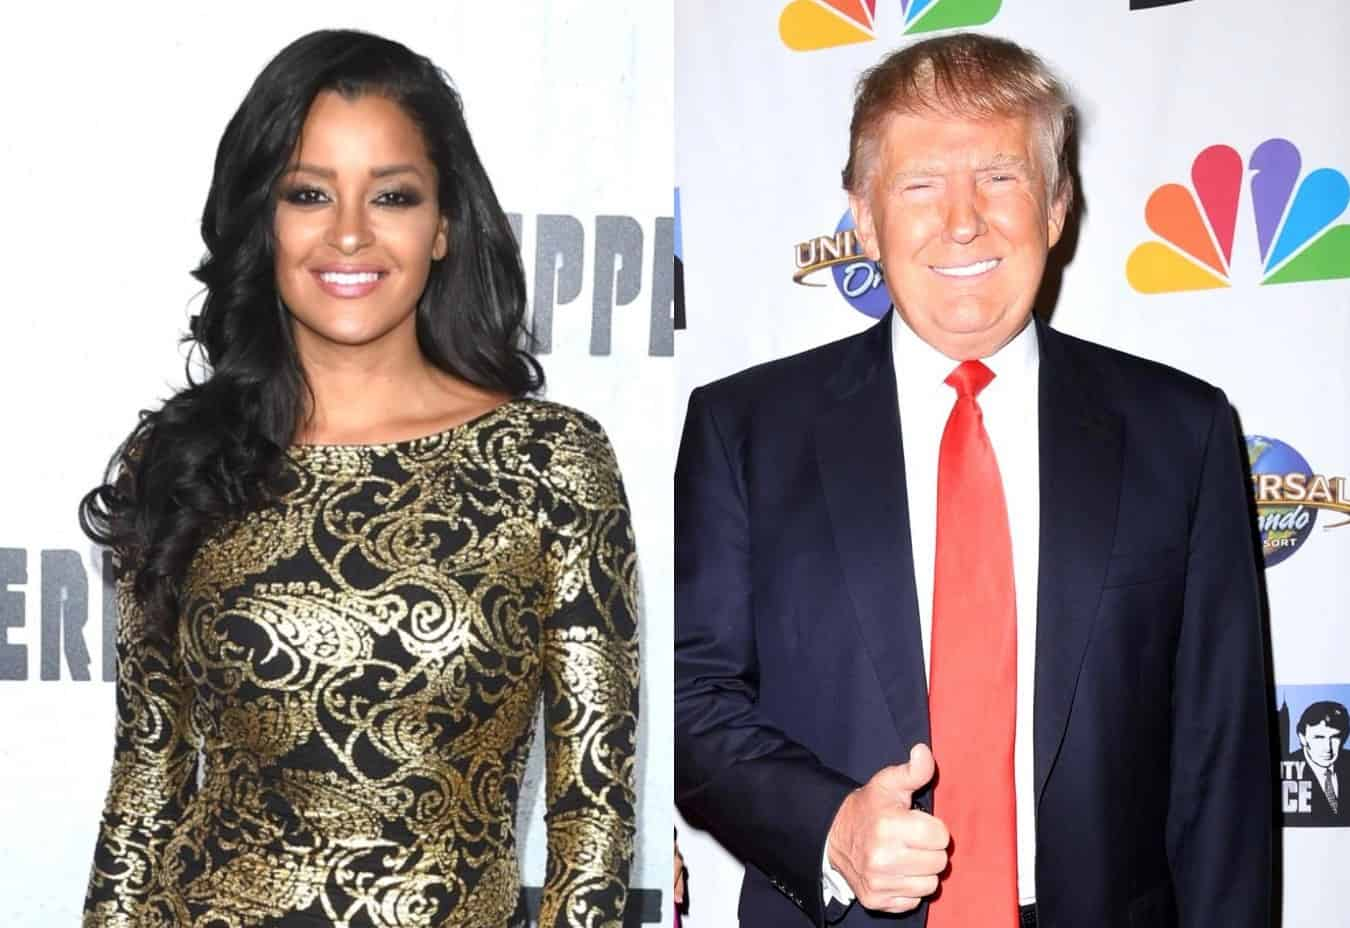 """RHOA's Claudia Jordan Claims Donald Trump """"Tried to Kiss"""" Her Twice While Married to Wife Milania and Says Everyone Knows He Cheats, Alleges Don Jr. Was """"Definitely Hollering"""" at Aubrey O'Day on Celebrity Apprentice"""